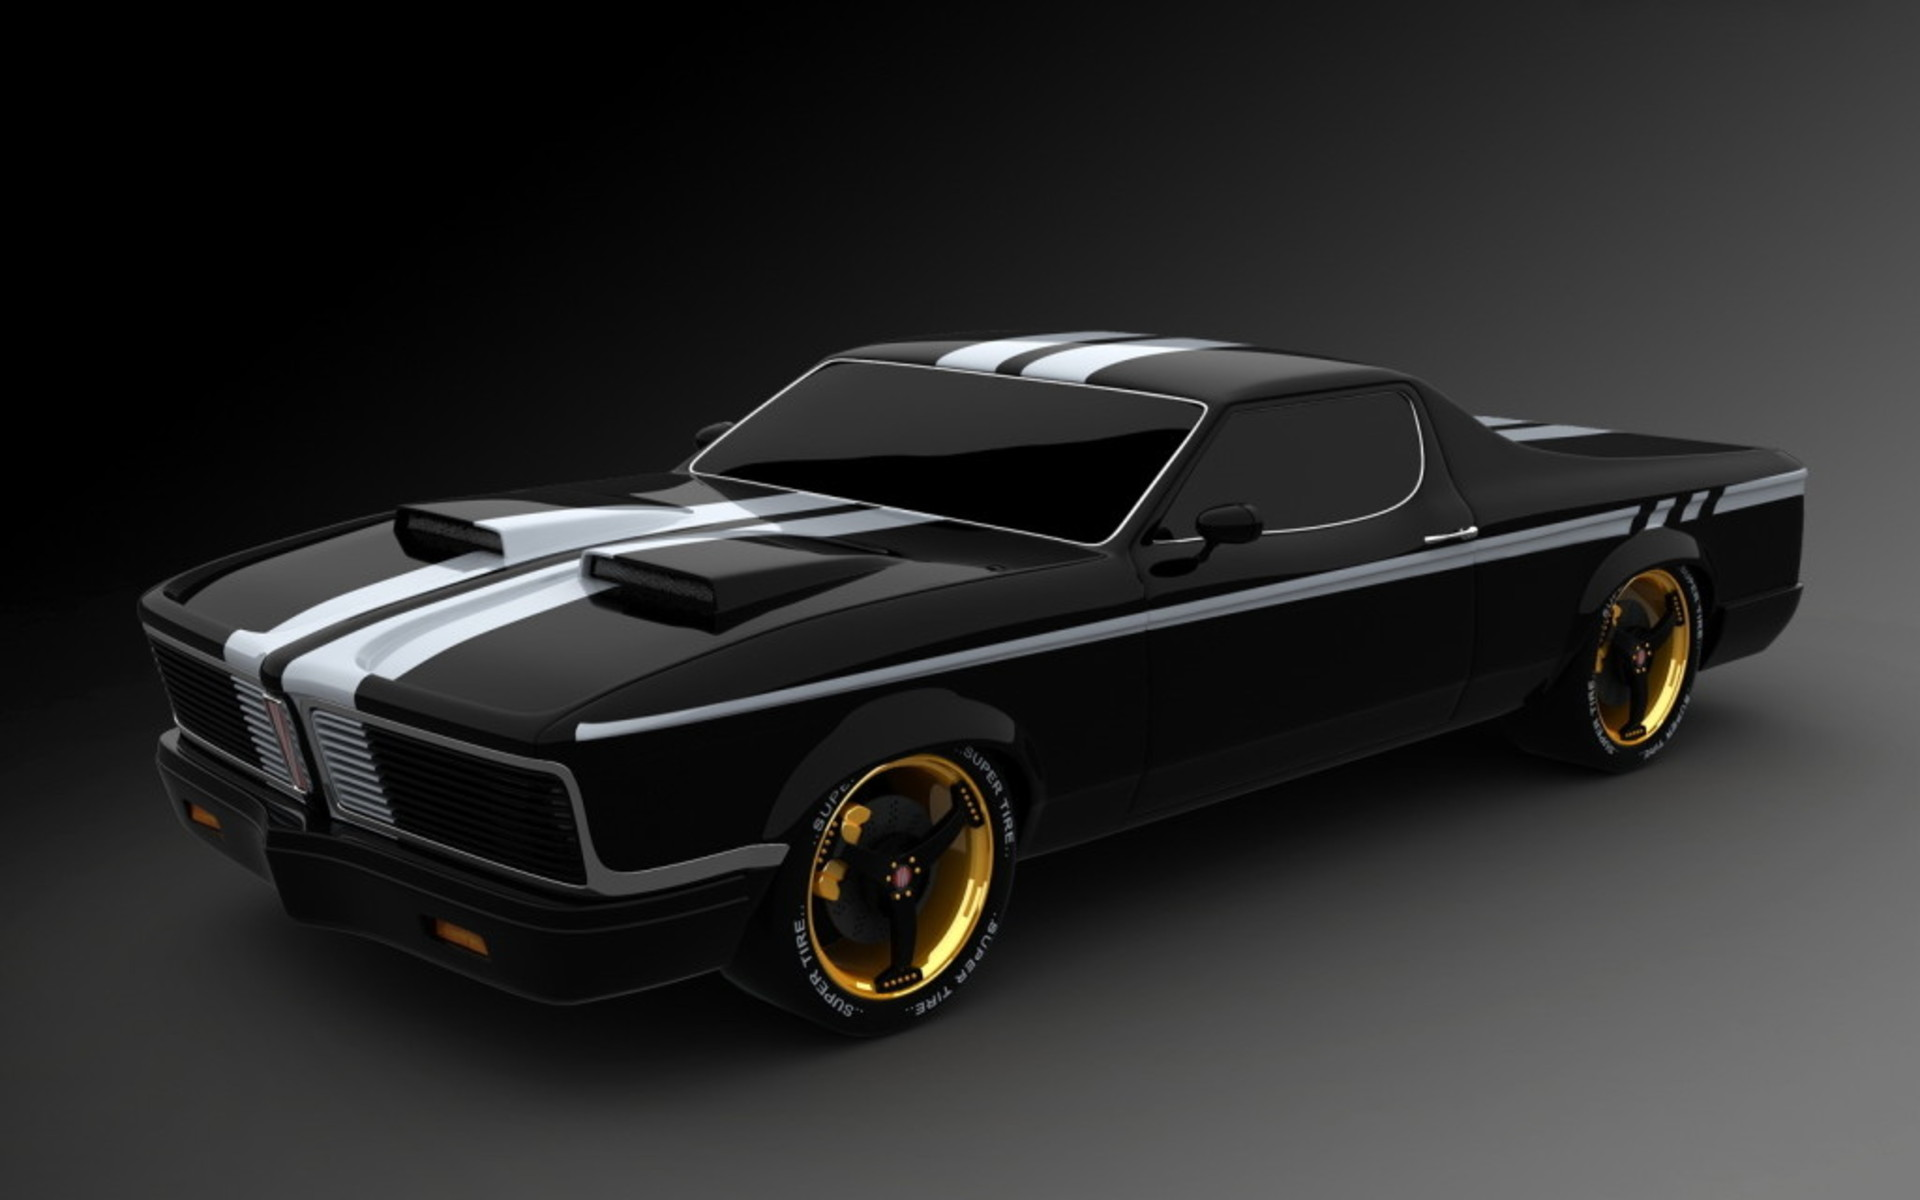 American muscle car wallpaper images free hd hd wallpaper - Muscle cars wallpaper hd pack ...